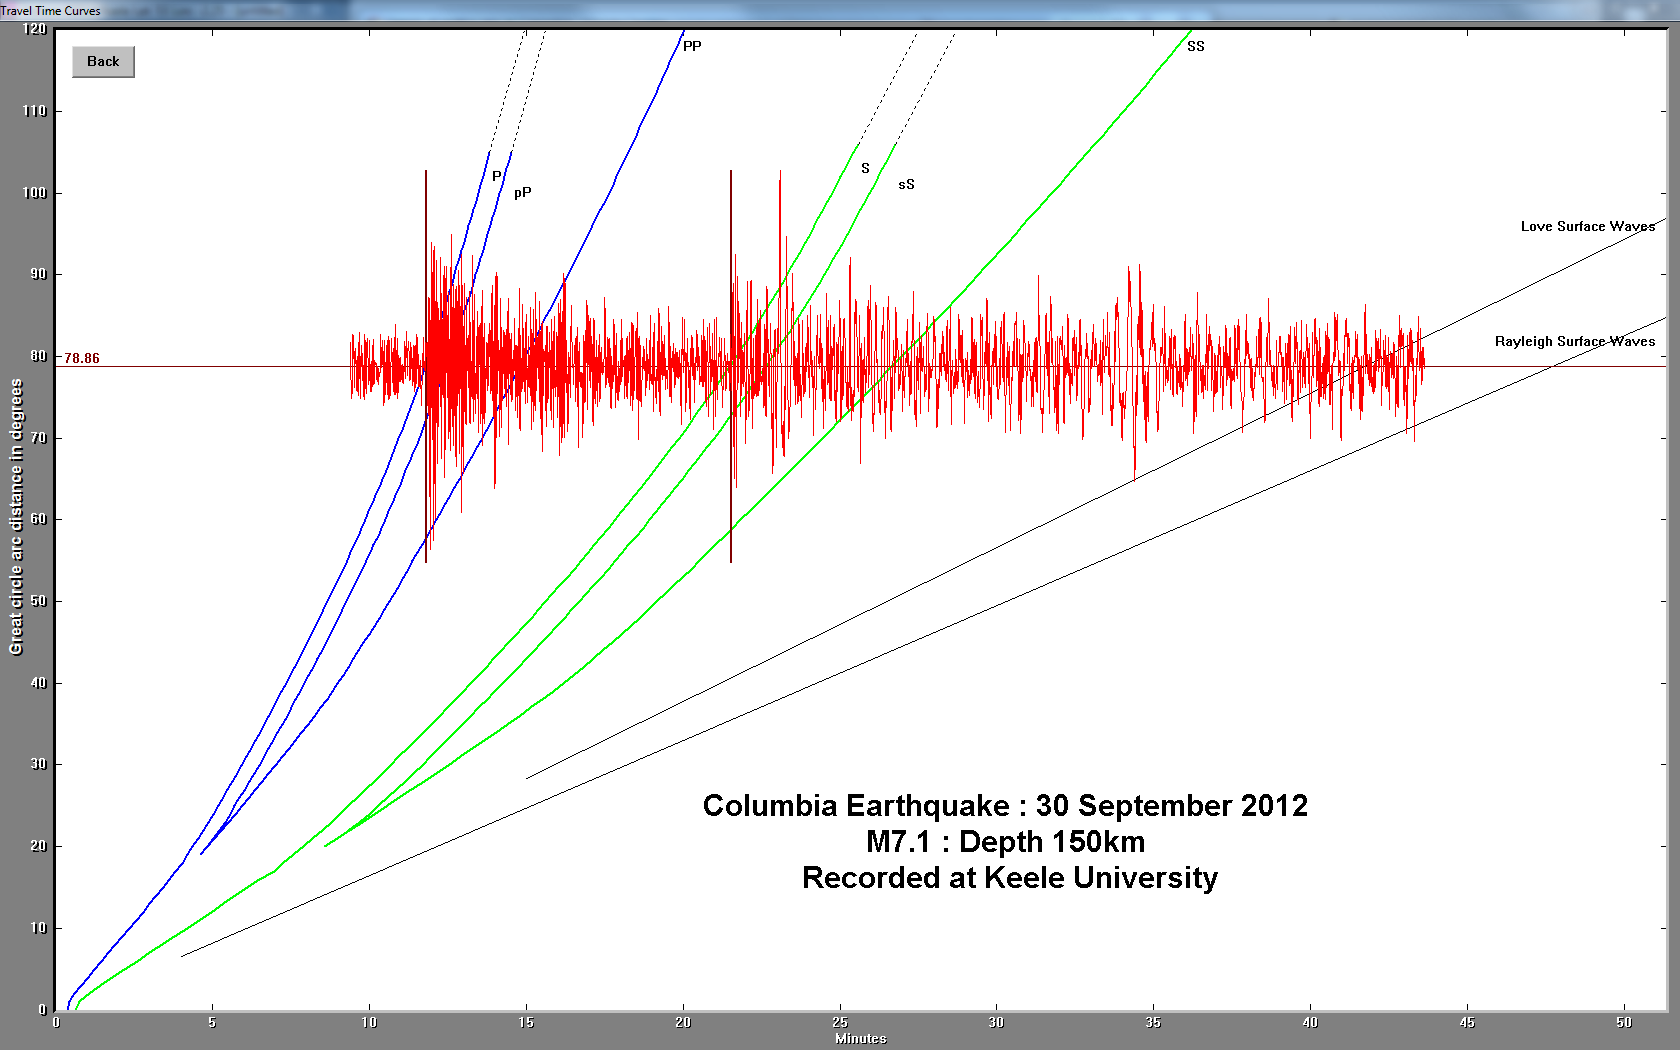 Columbia earthquake recorded at Keele, UK